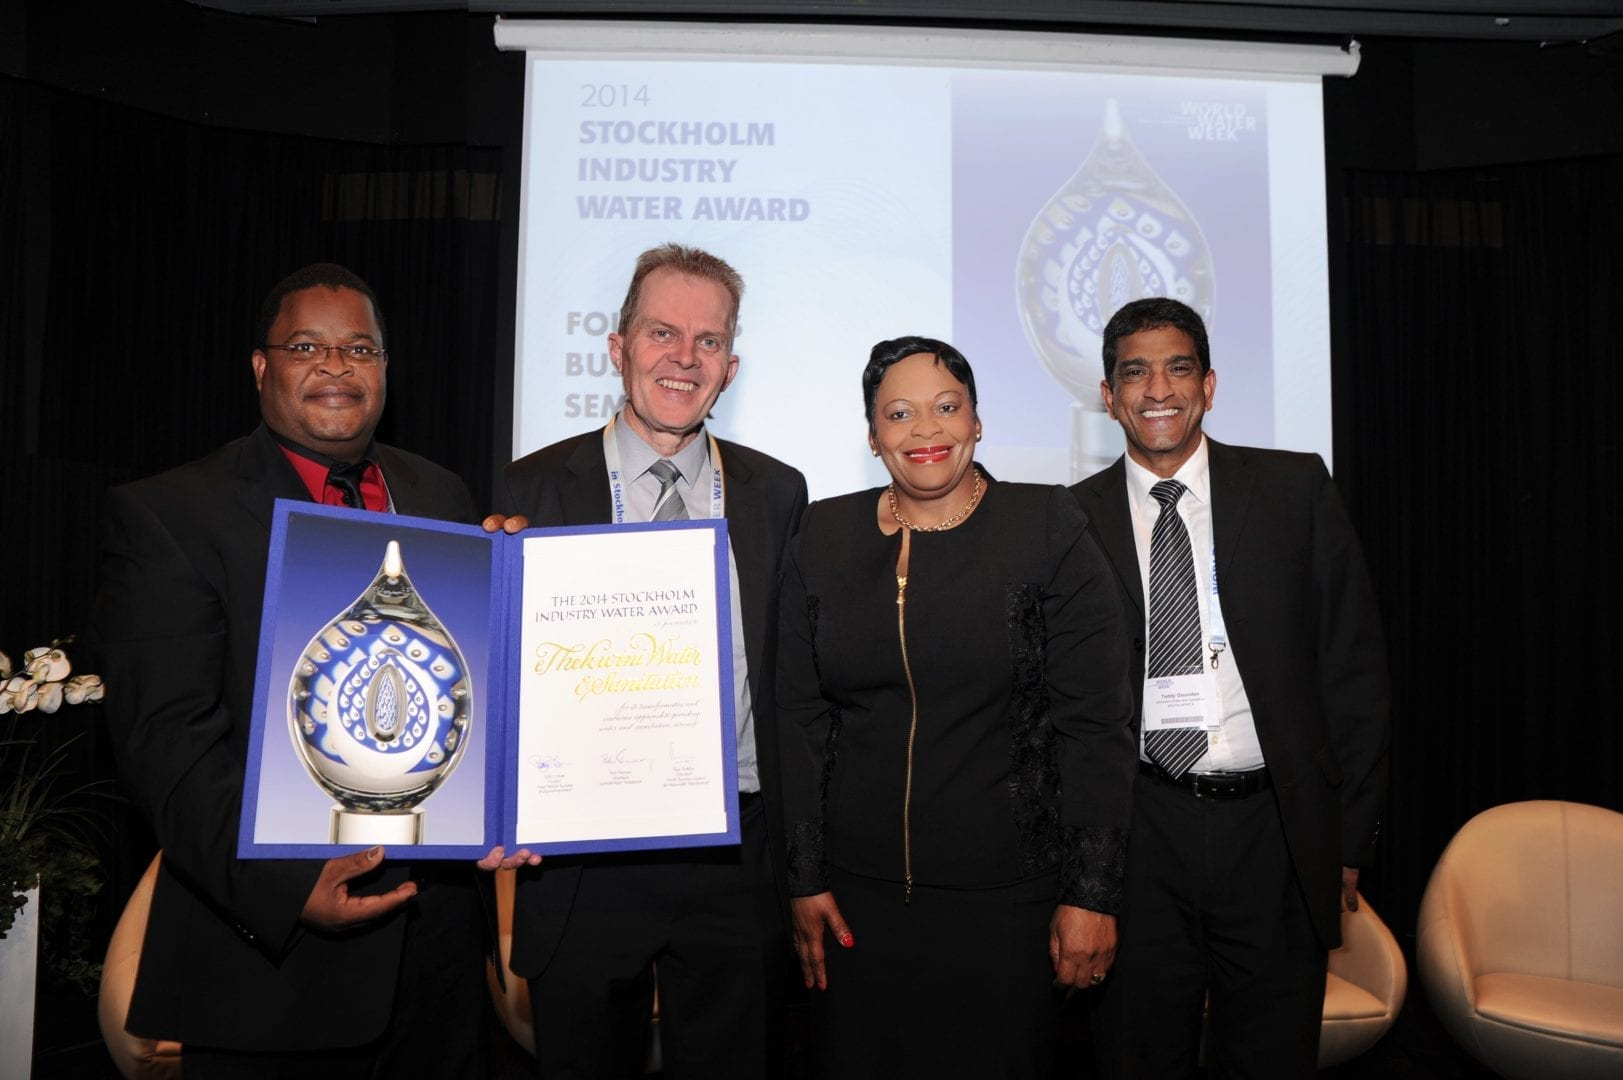 eThekwini accepts Stockholm Industry Water Award